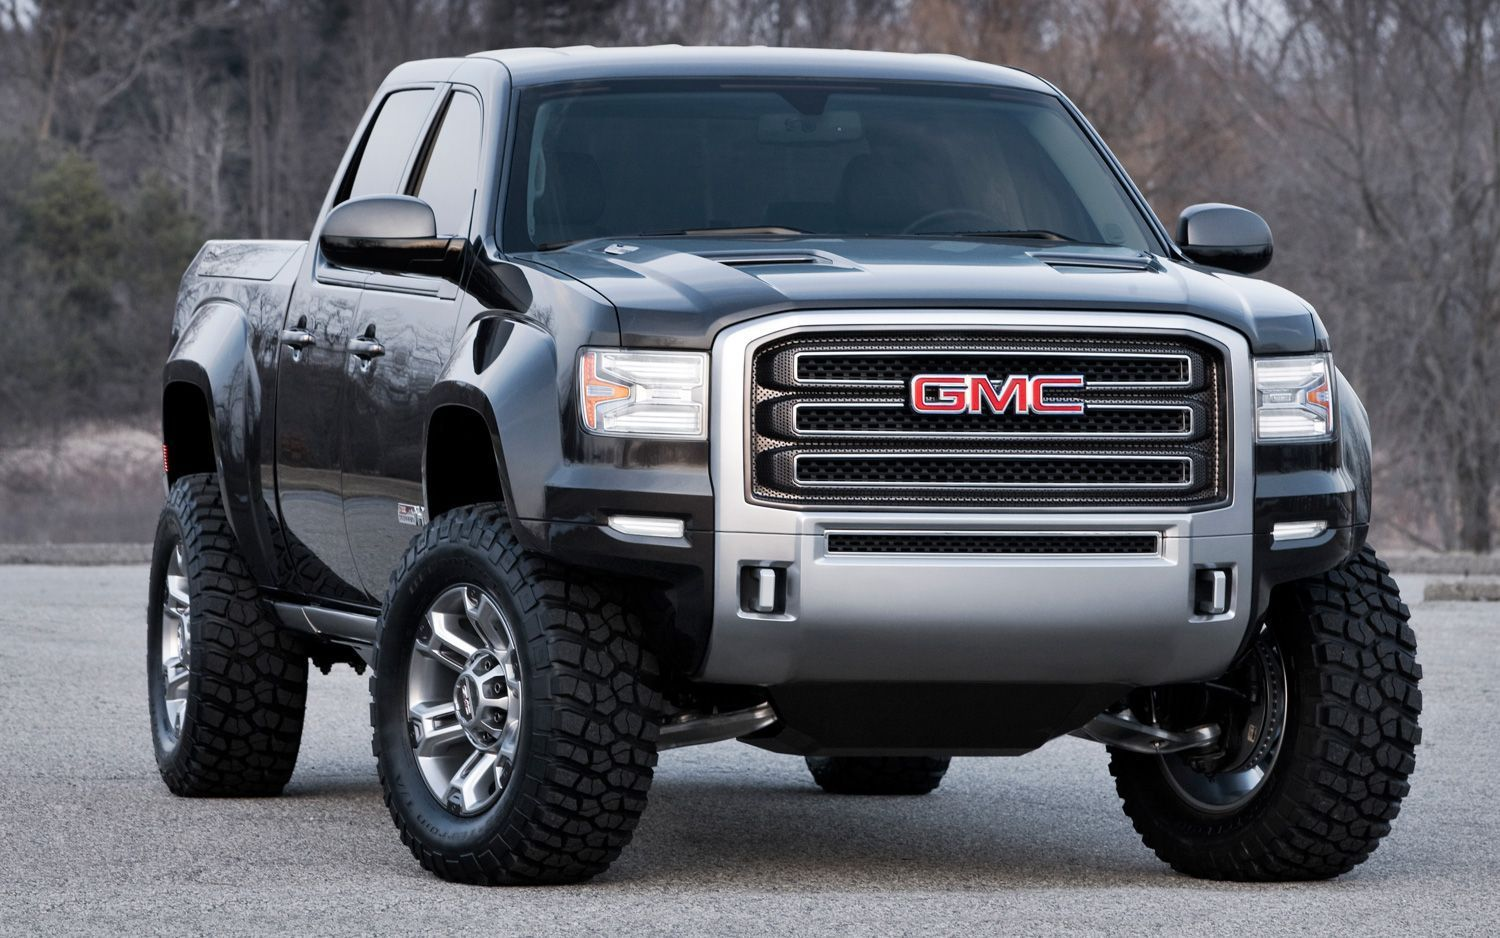 2020 GMC Sierra 2500 Heavy Duty Updates, Changes and Price - New Car Rumor | GMC | Pinterest | Cars